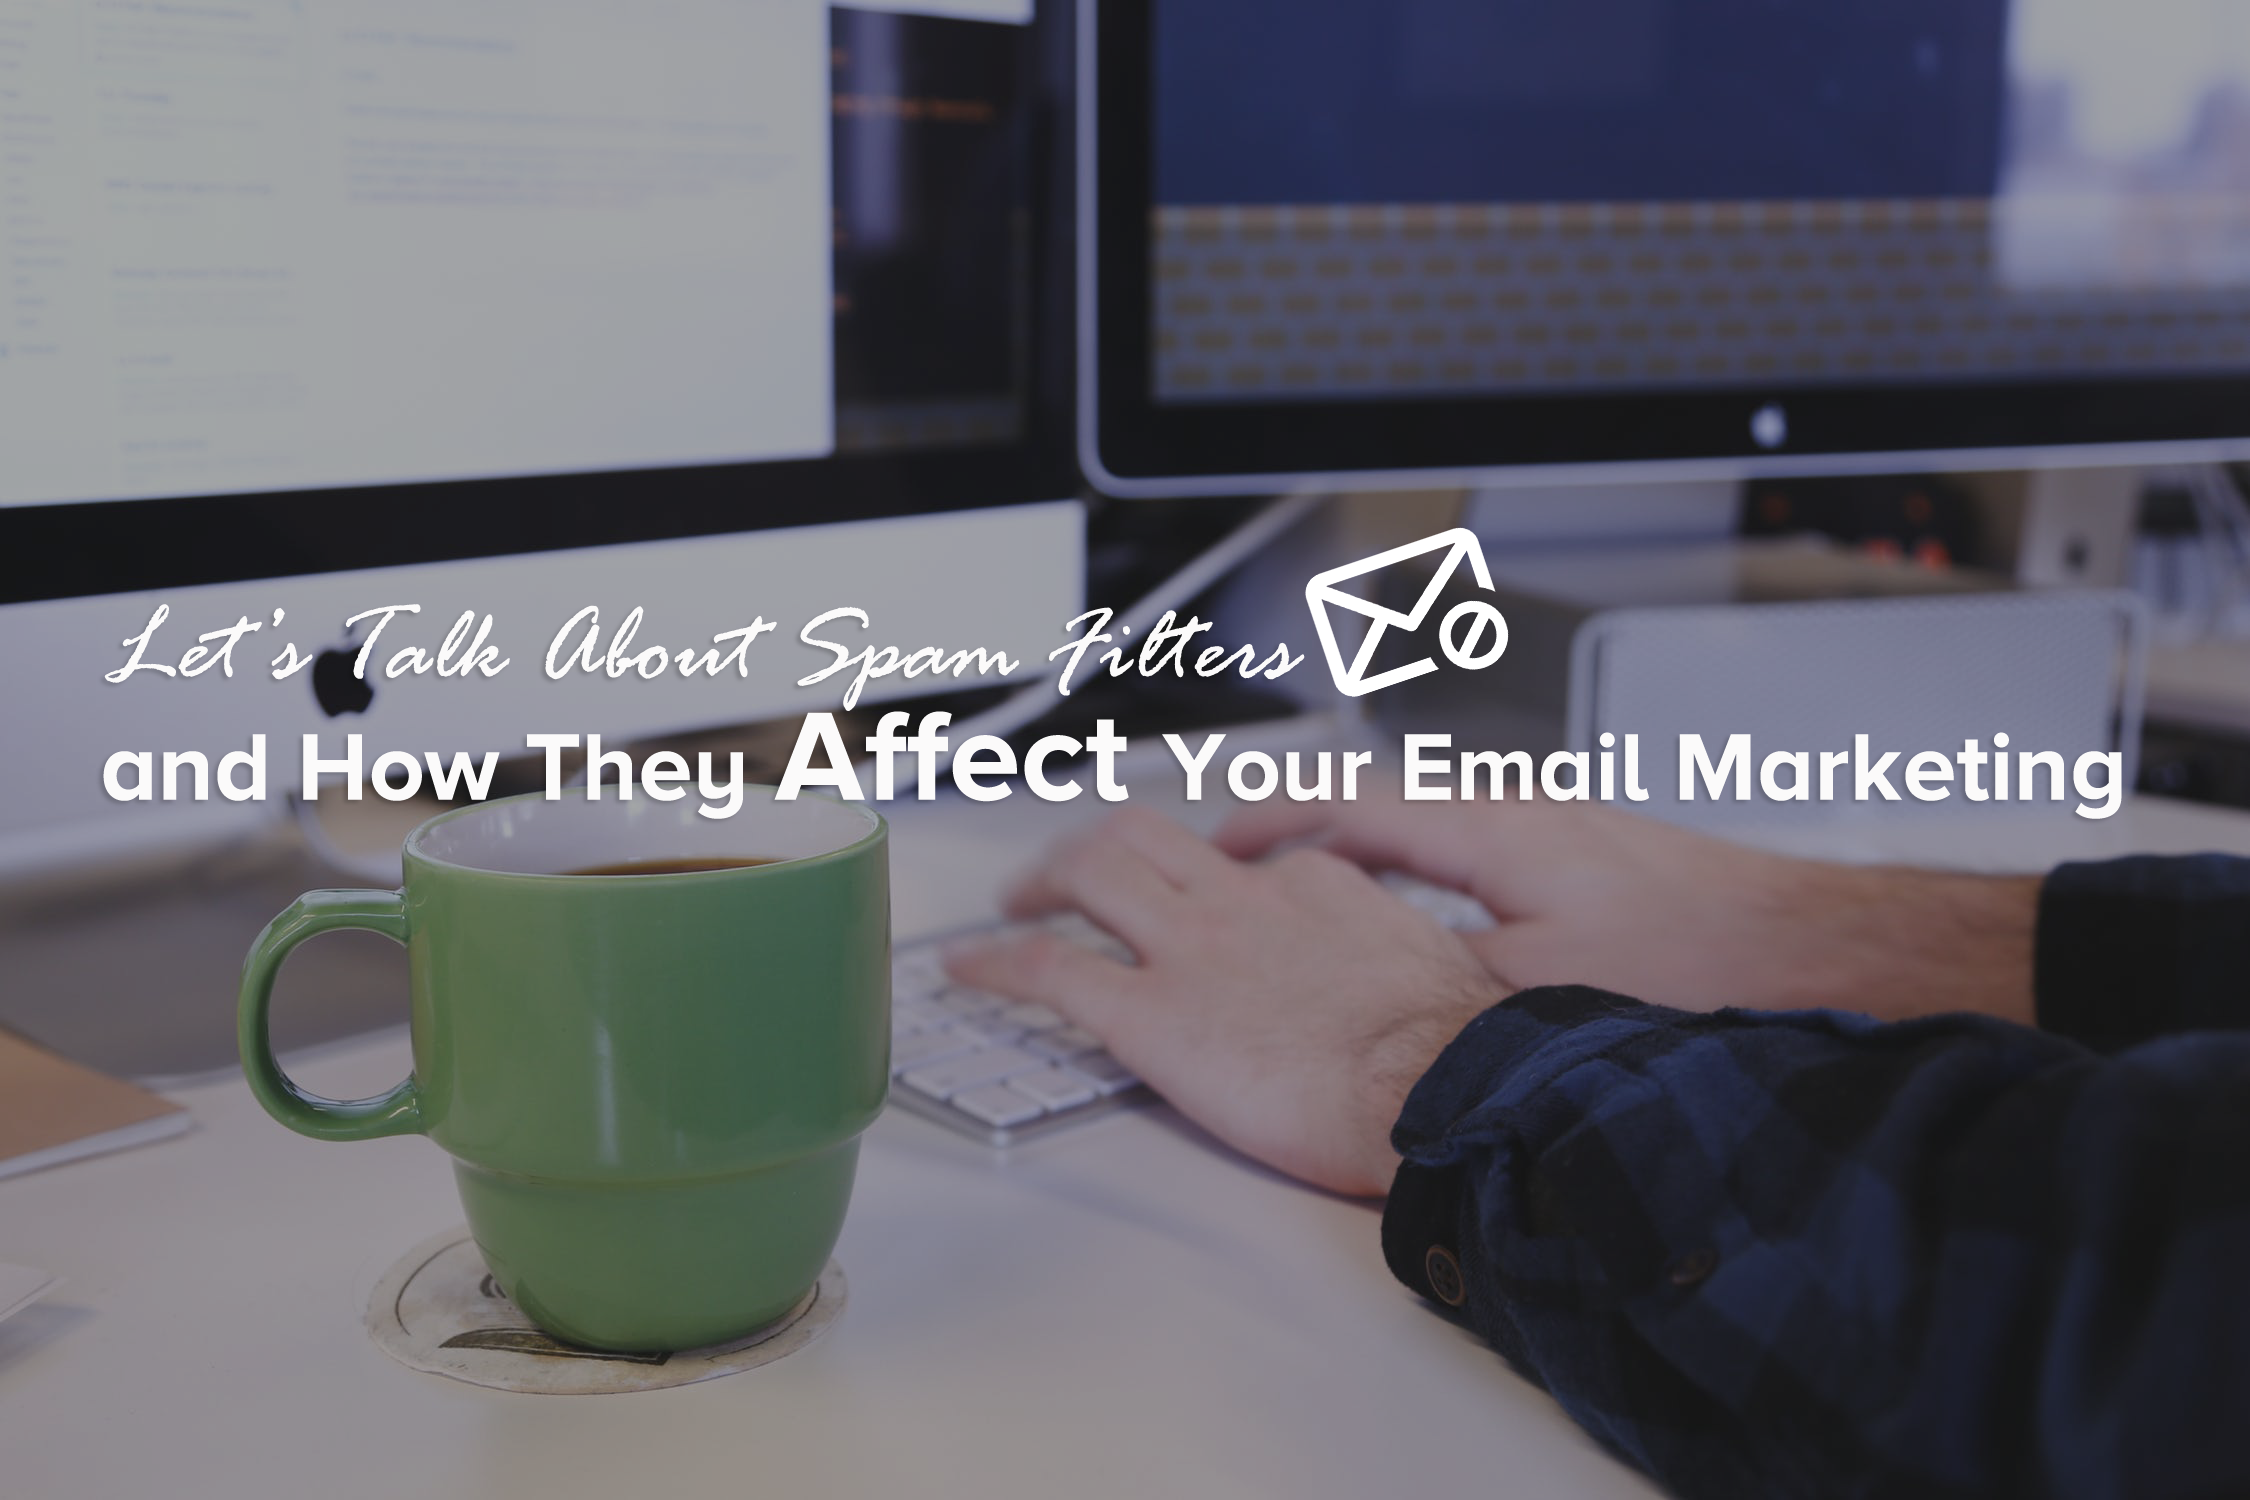 lets-talk-about-spam-filters-and-how-they-affect-your-email-marketing